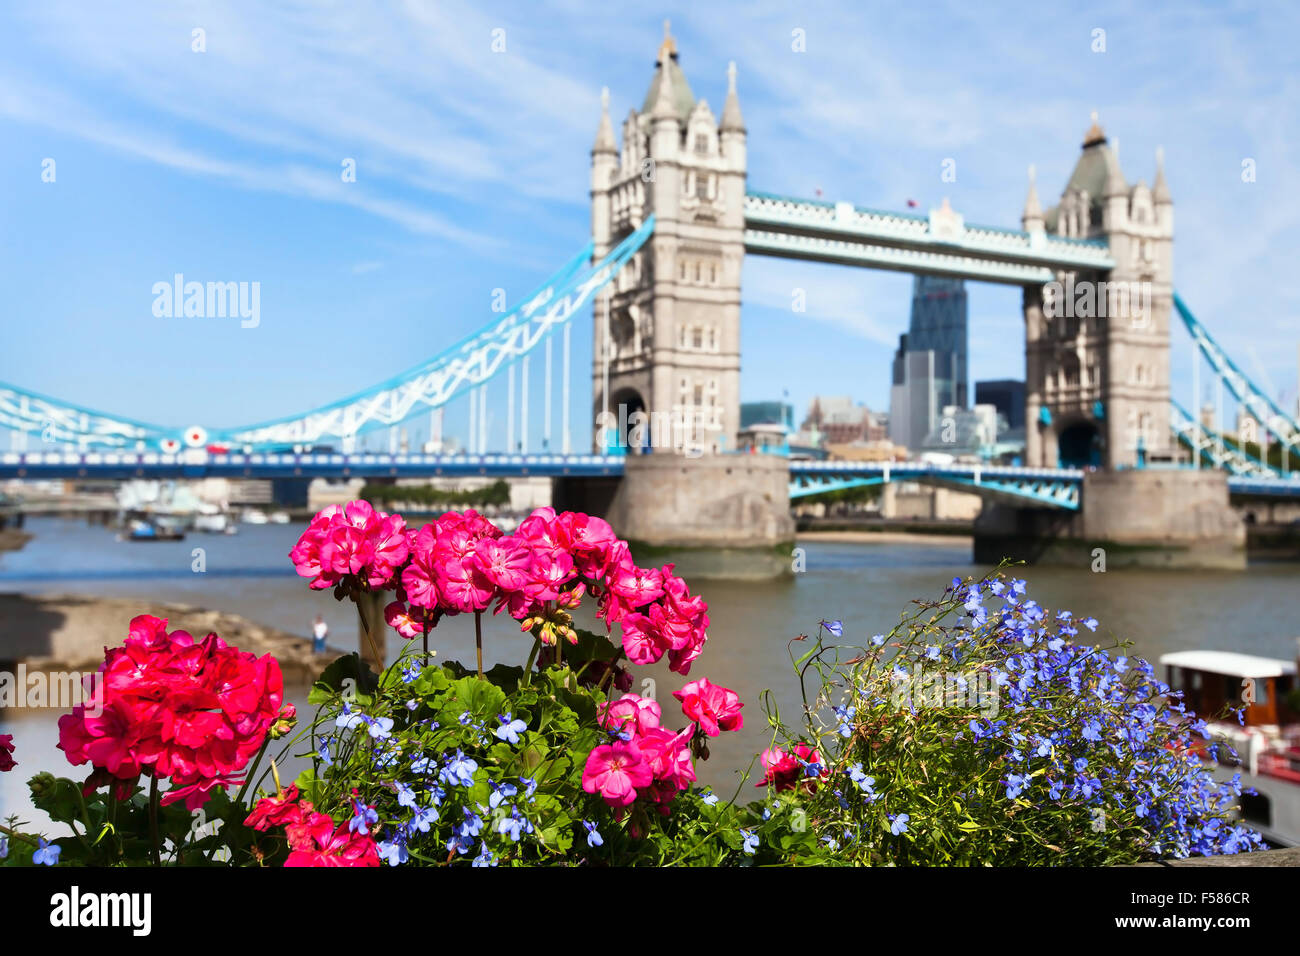 London view in summer, Tower Bridge, UK - Stock Image